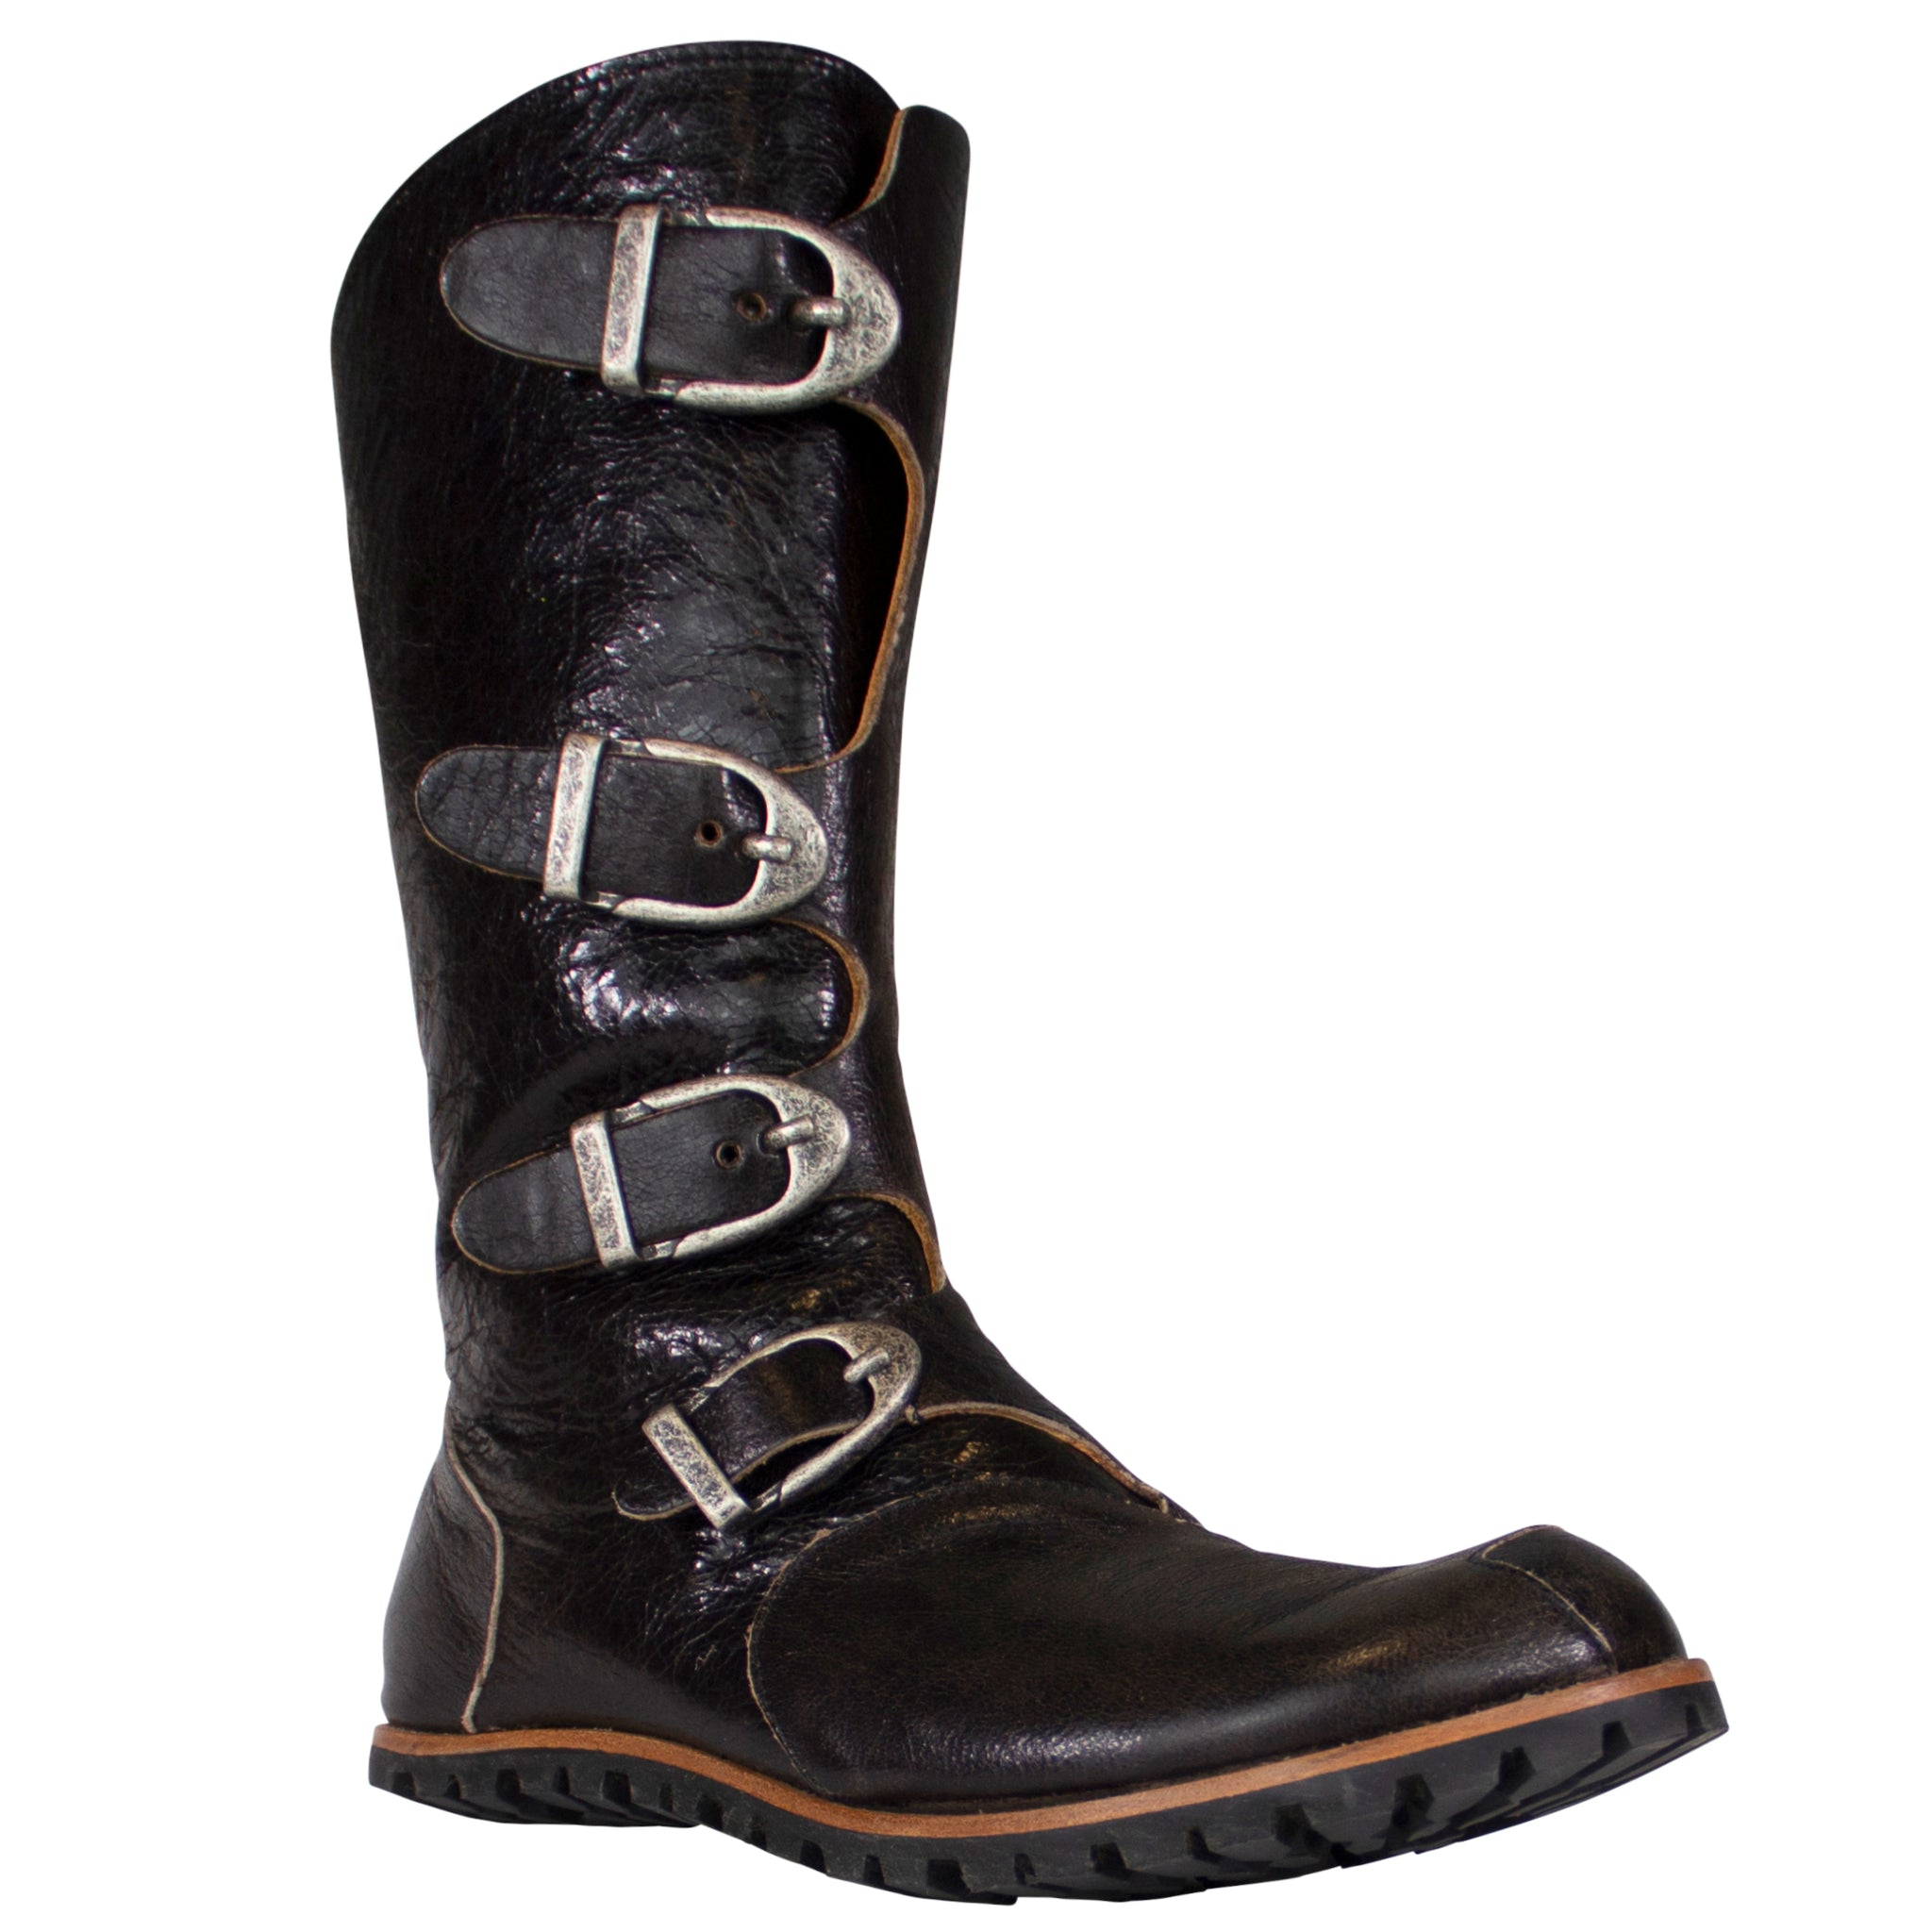 mid calf urban styled buckle boots in shiny crackle black leather